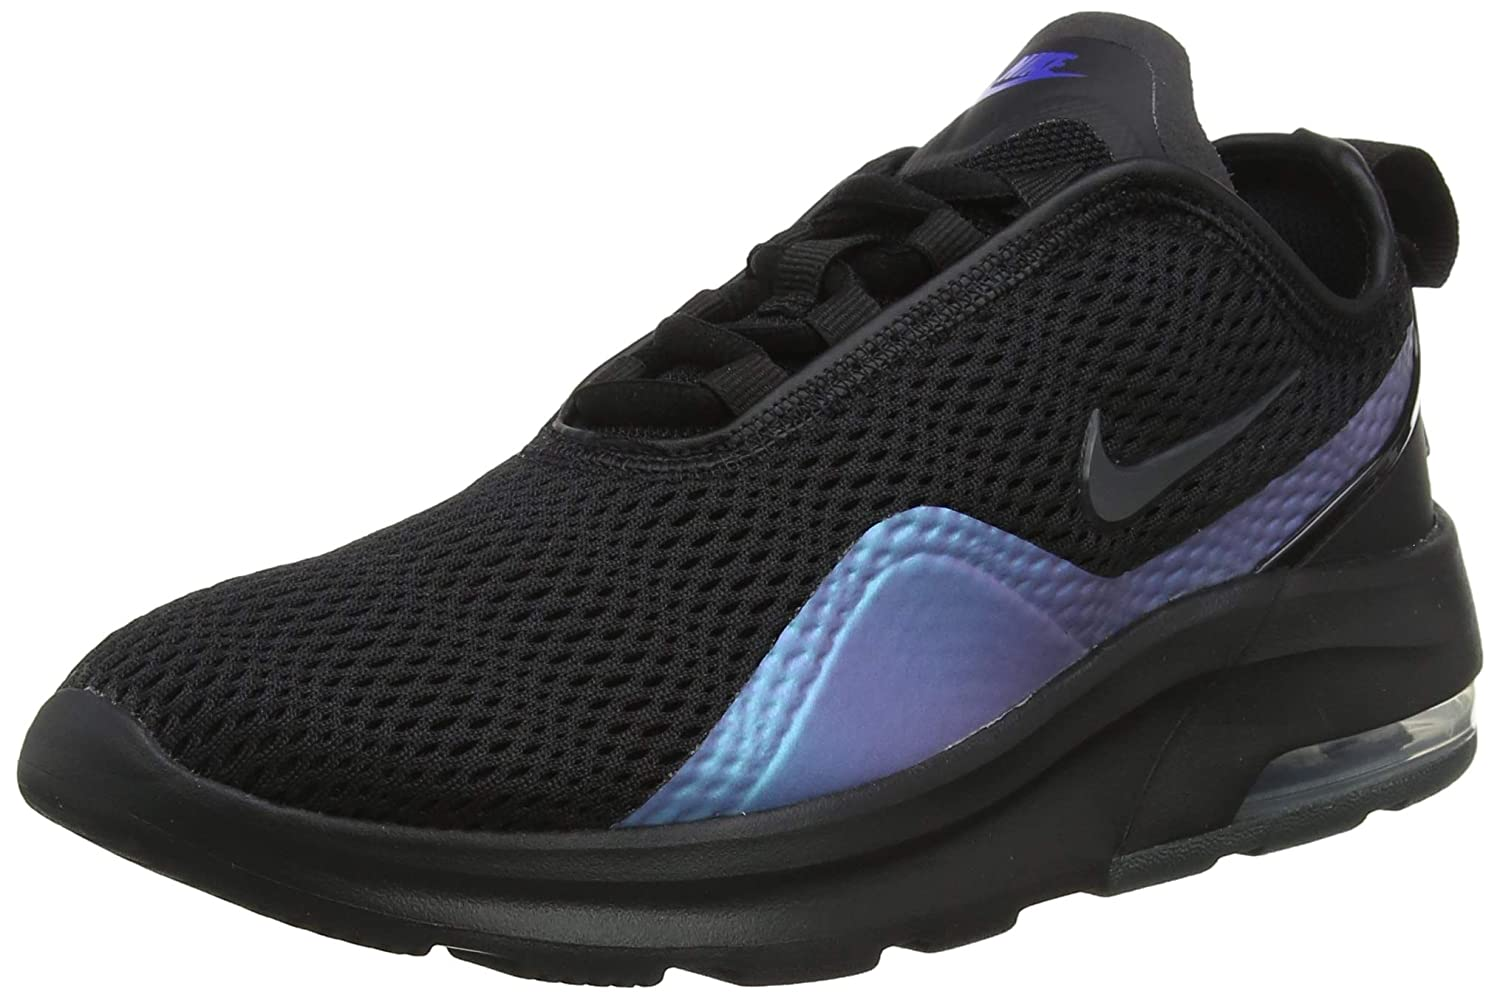 Nike Women's Air Max Motion 2 Running Shoes, Black/Anthracite-Racer Blue